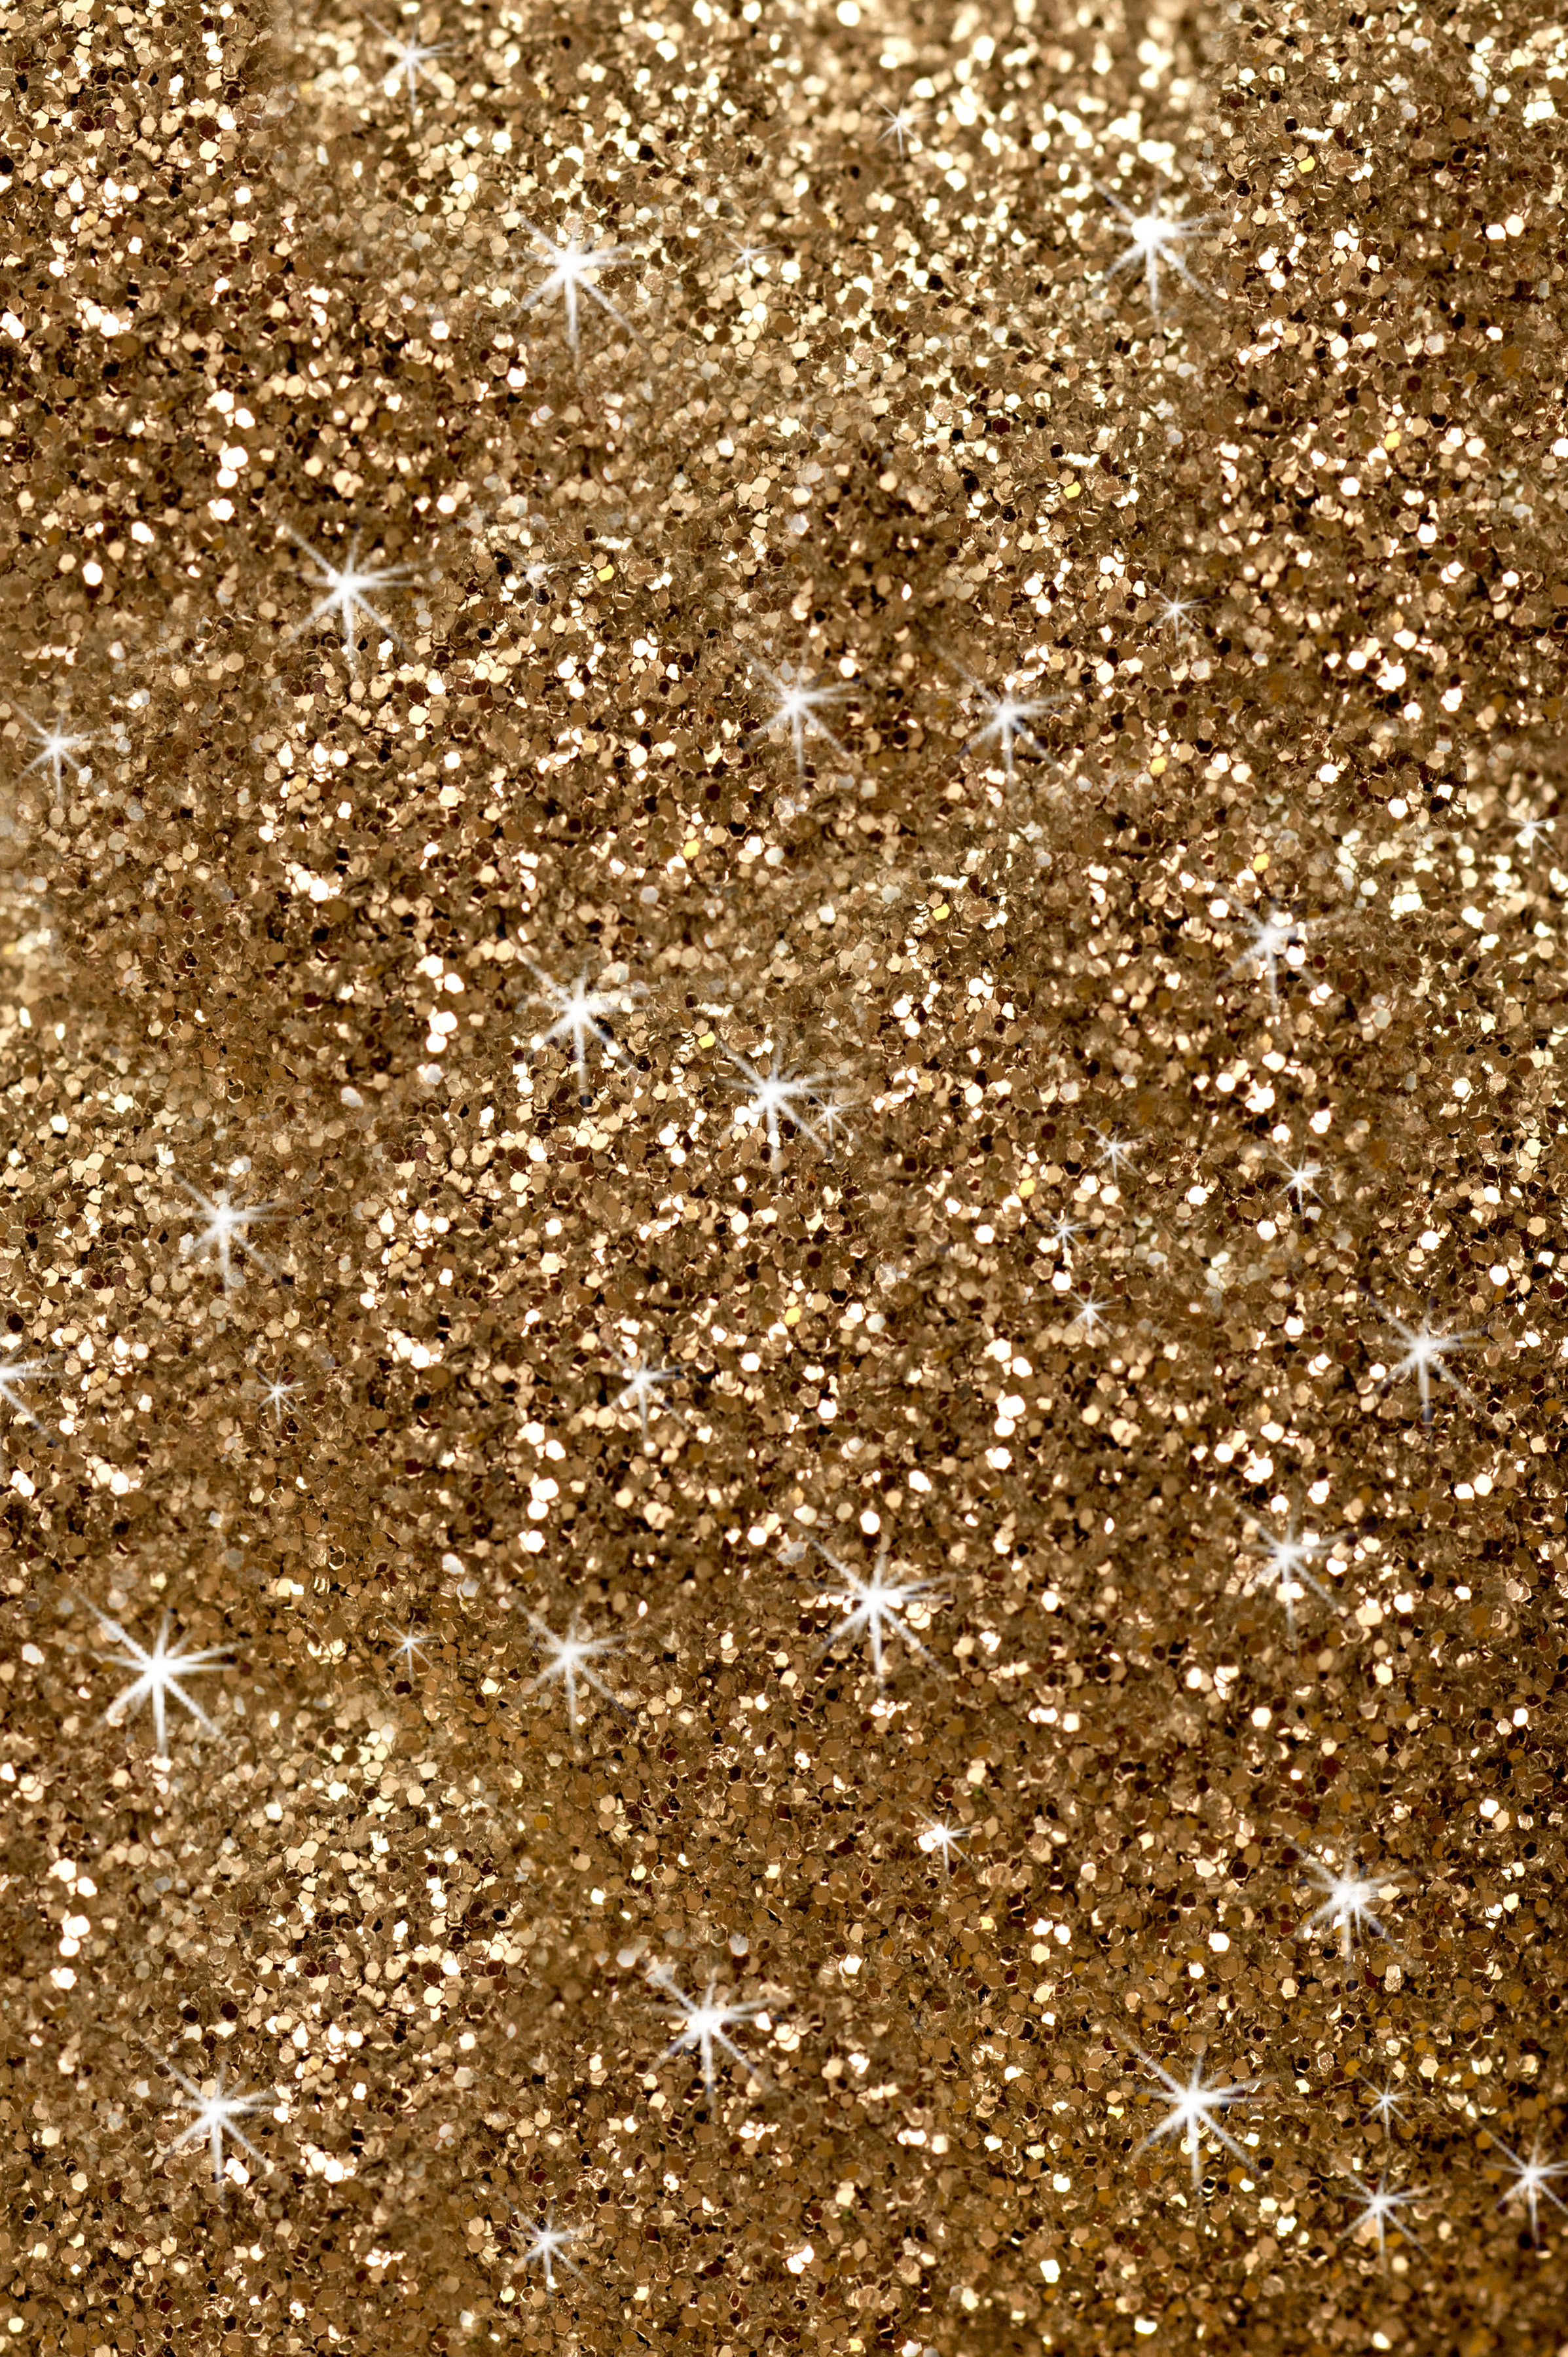 Twinkling sparkling gold glitter texture in a full frame background for your Christmas, carnival, holiday or festive themed greeting